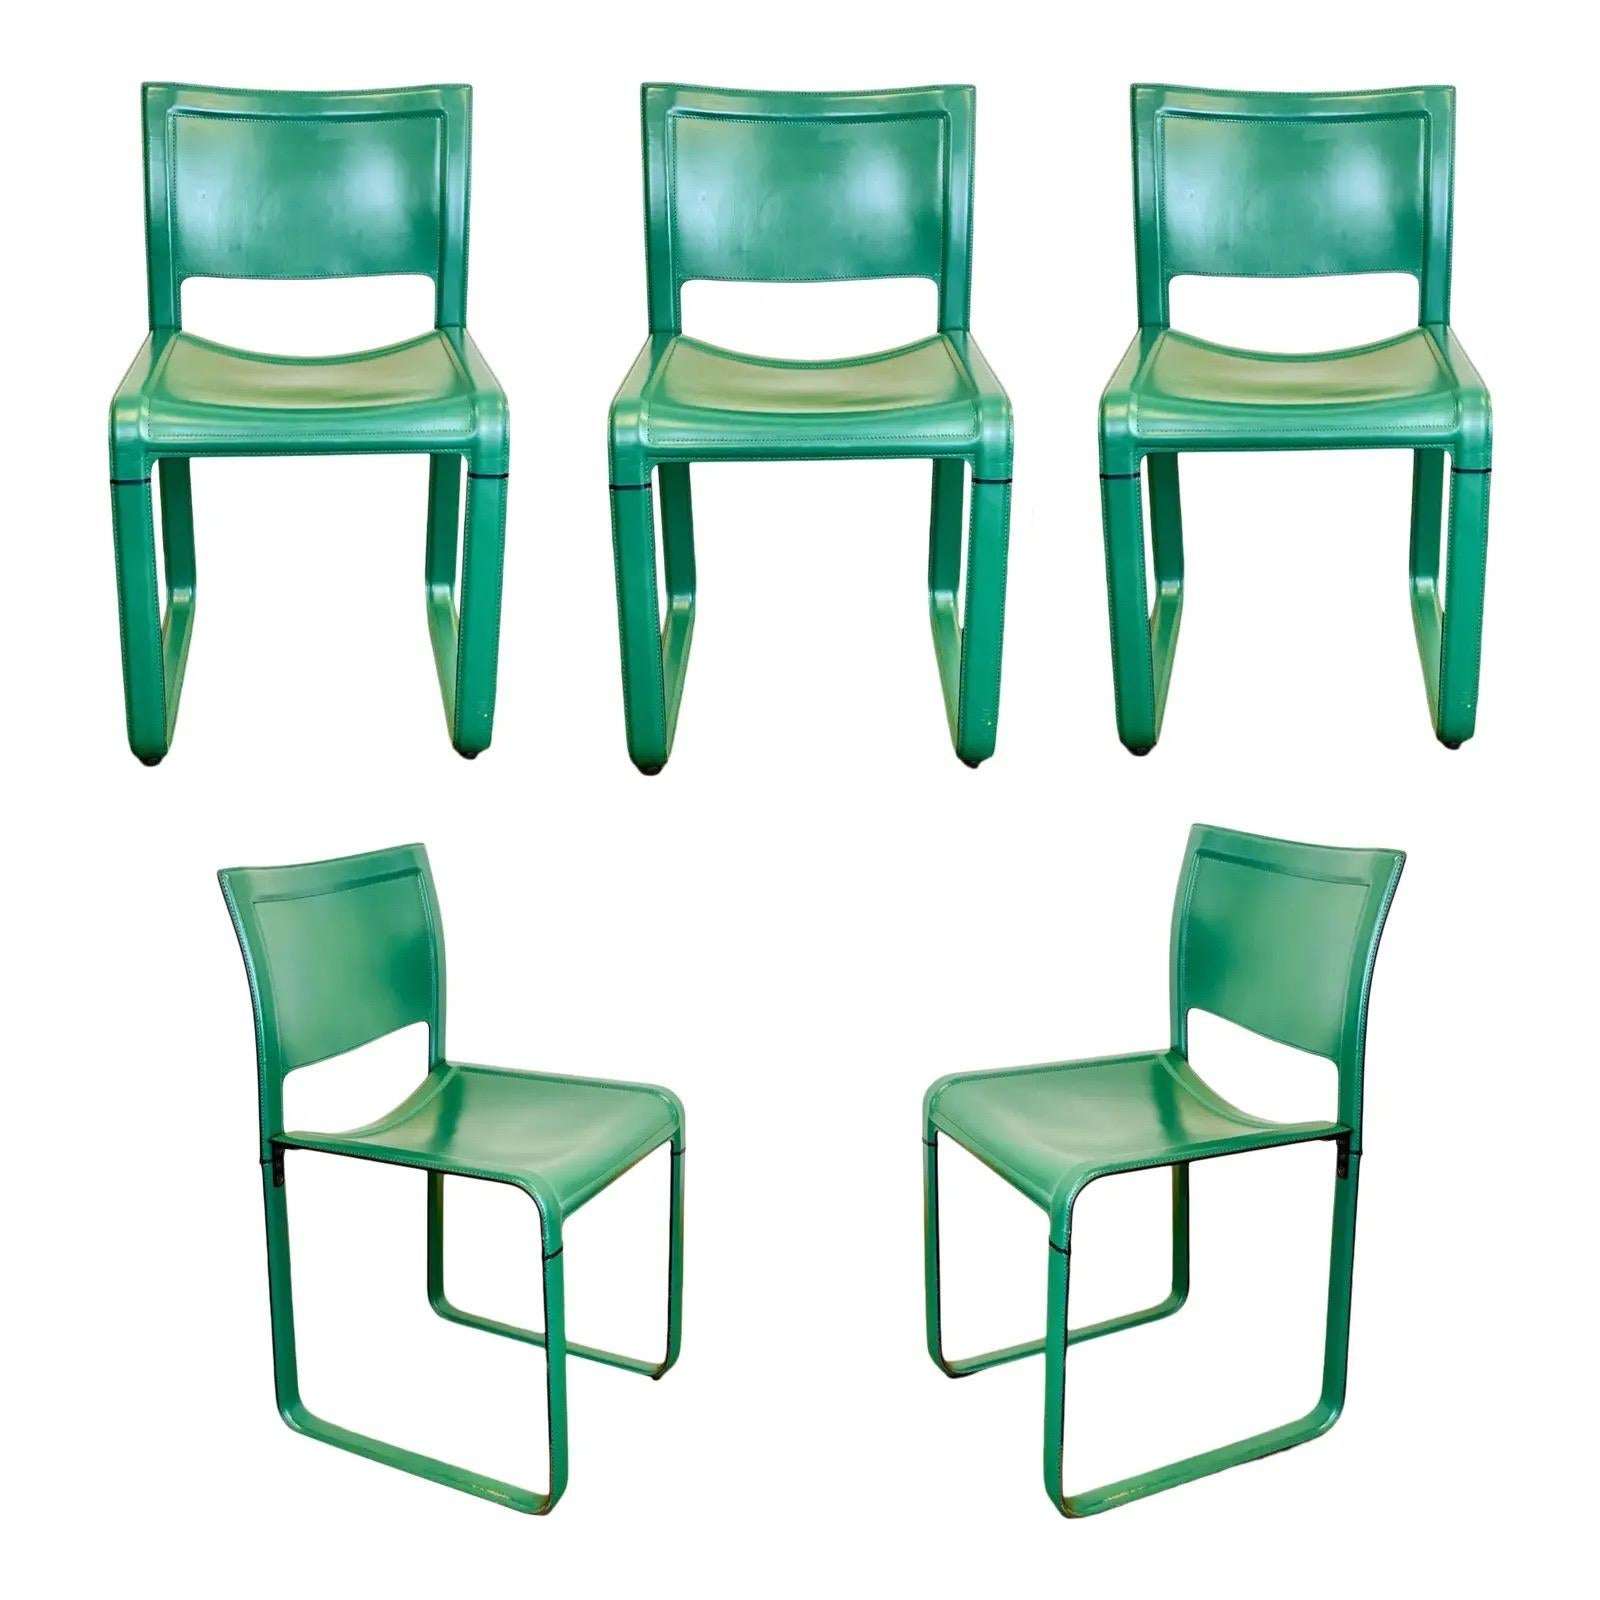 Tito Agnoli for Matteo Grassi Sistena Green Leather Dining Chairs, Set of 5